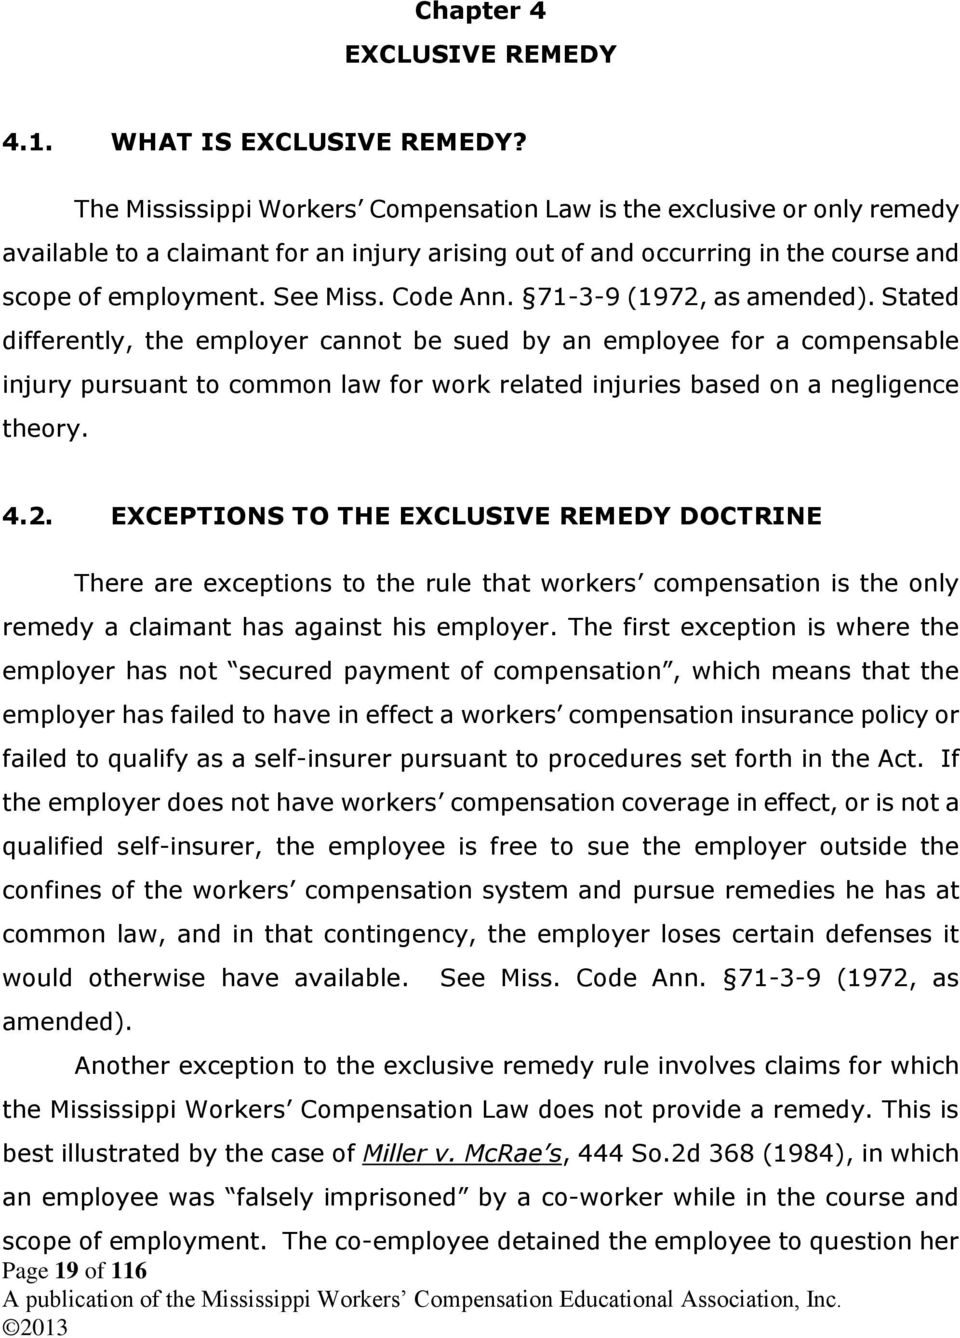 71-3-9 (1972, as amended). Stated differently, the employer cannot be sued by an employee for a compensable injury pursuant to common law for work related injuries based on a negligence theory. 4.2. EXCEPTIONS TO THE EXCLUSIVE REMEDY DOCTRINE There are exceptions to the rule that workers compensation is the only remedy a claimant has against his employer.